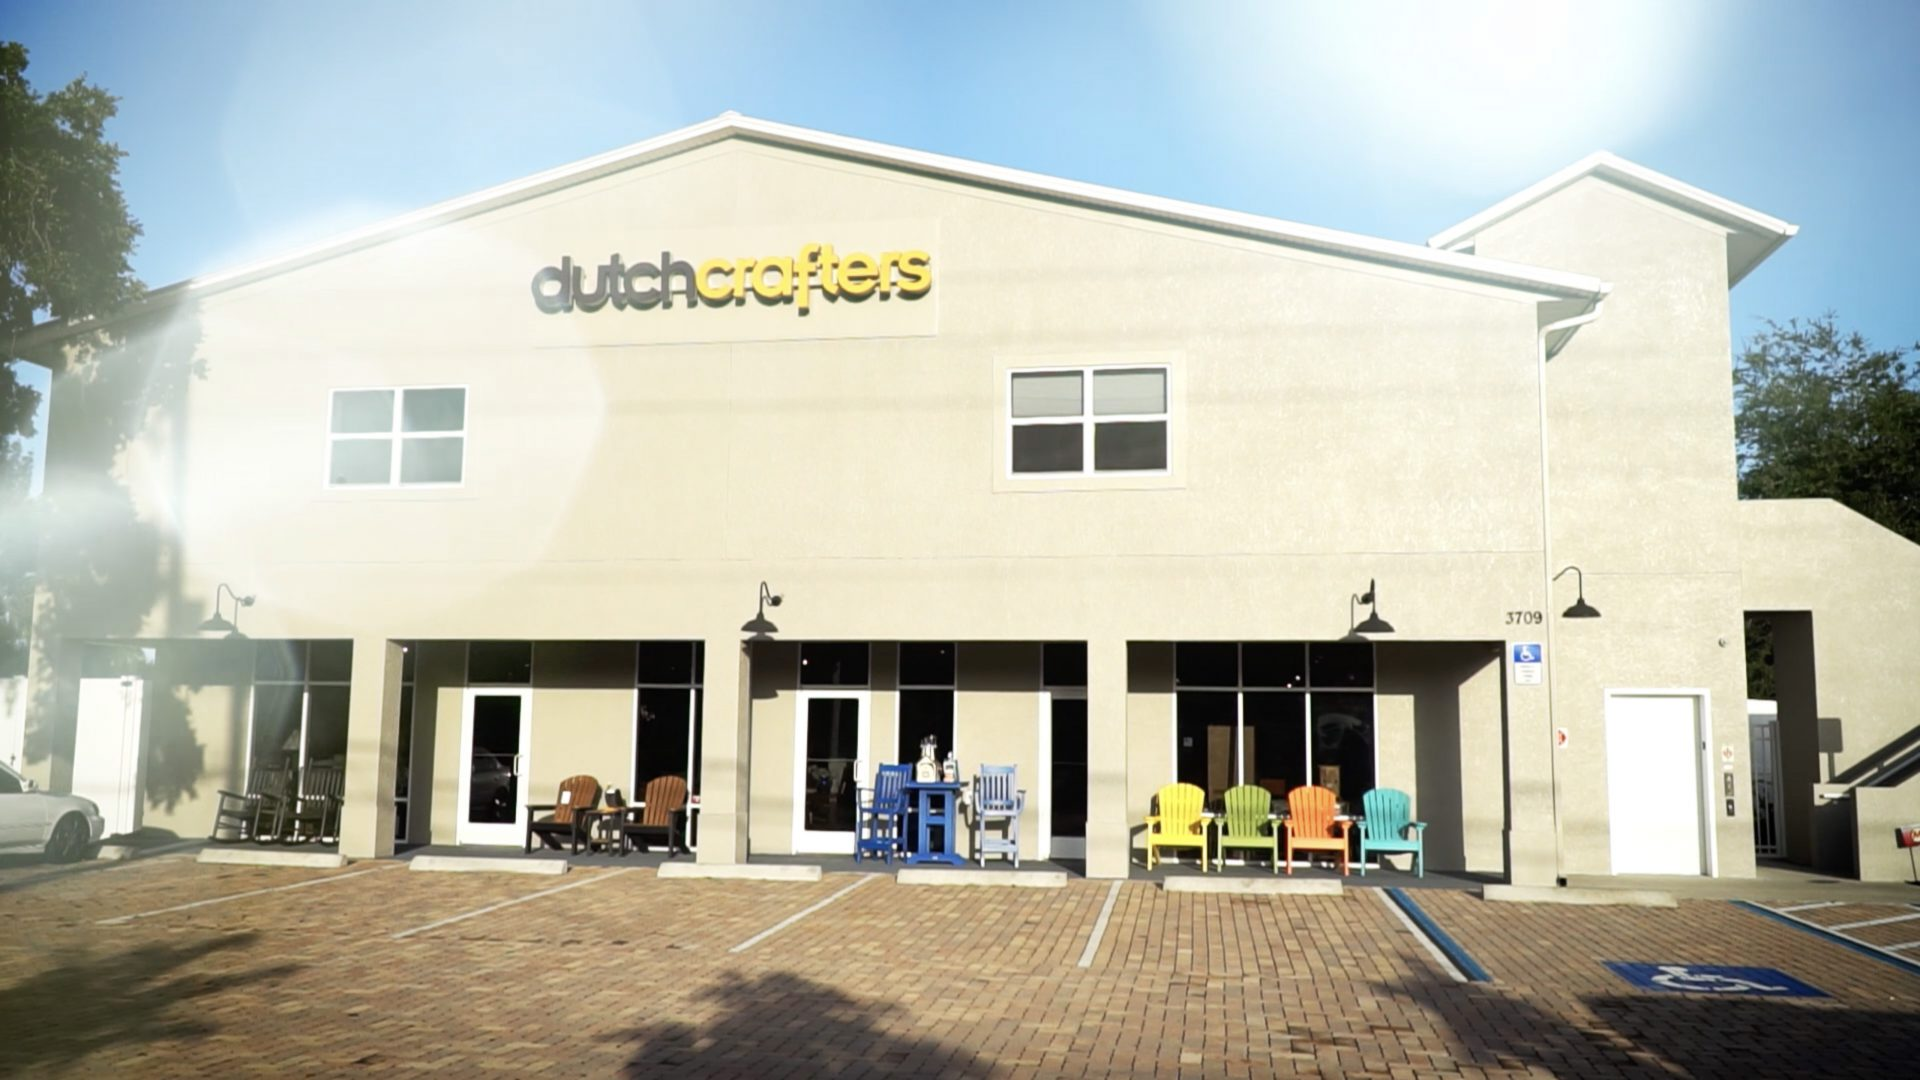 DutchCrafters Furniture Store